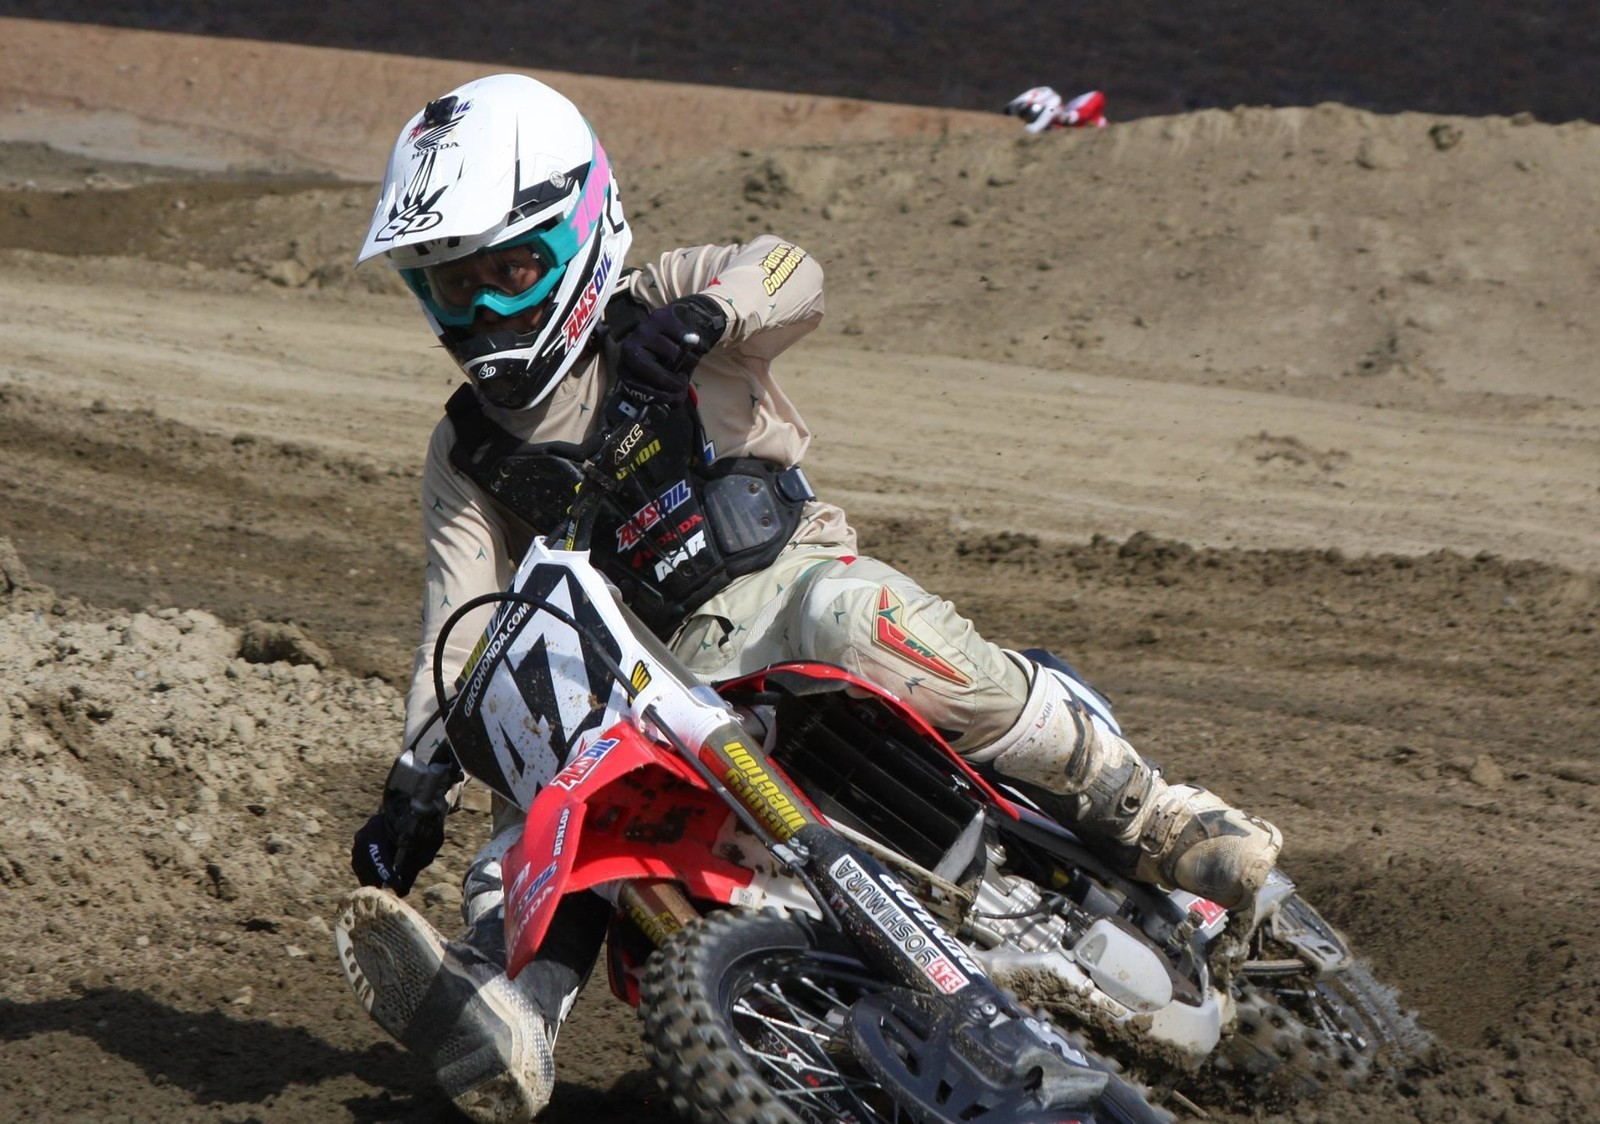 Jo Shimoda #47 with the RXR Protect Bullet